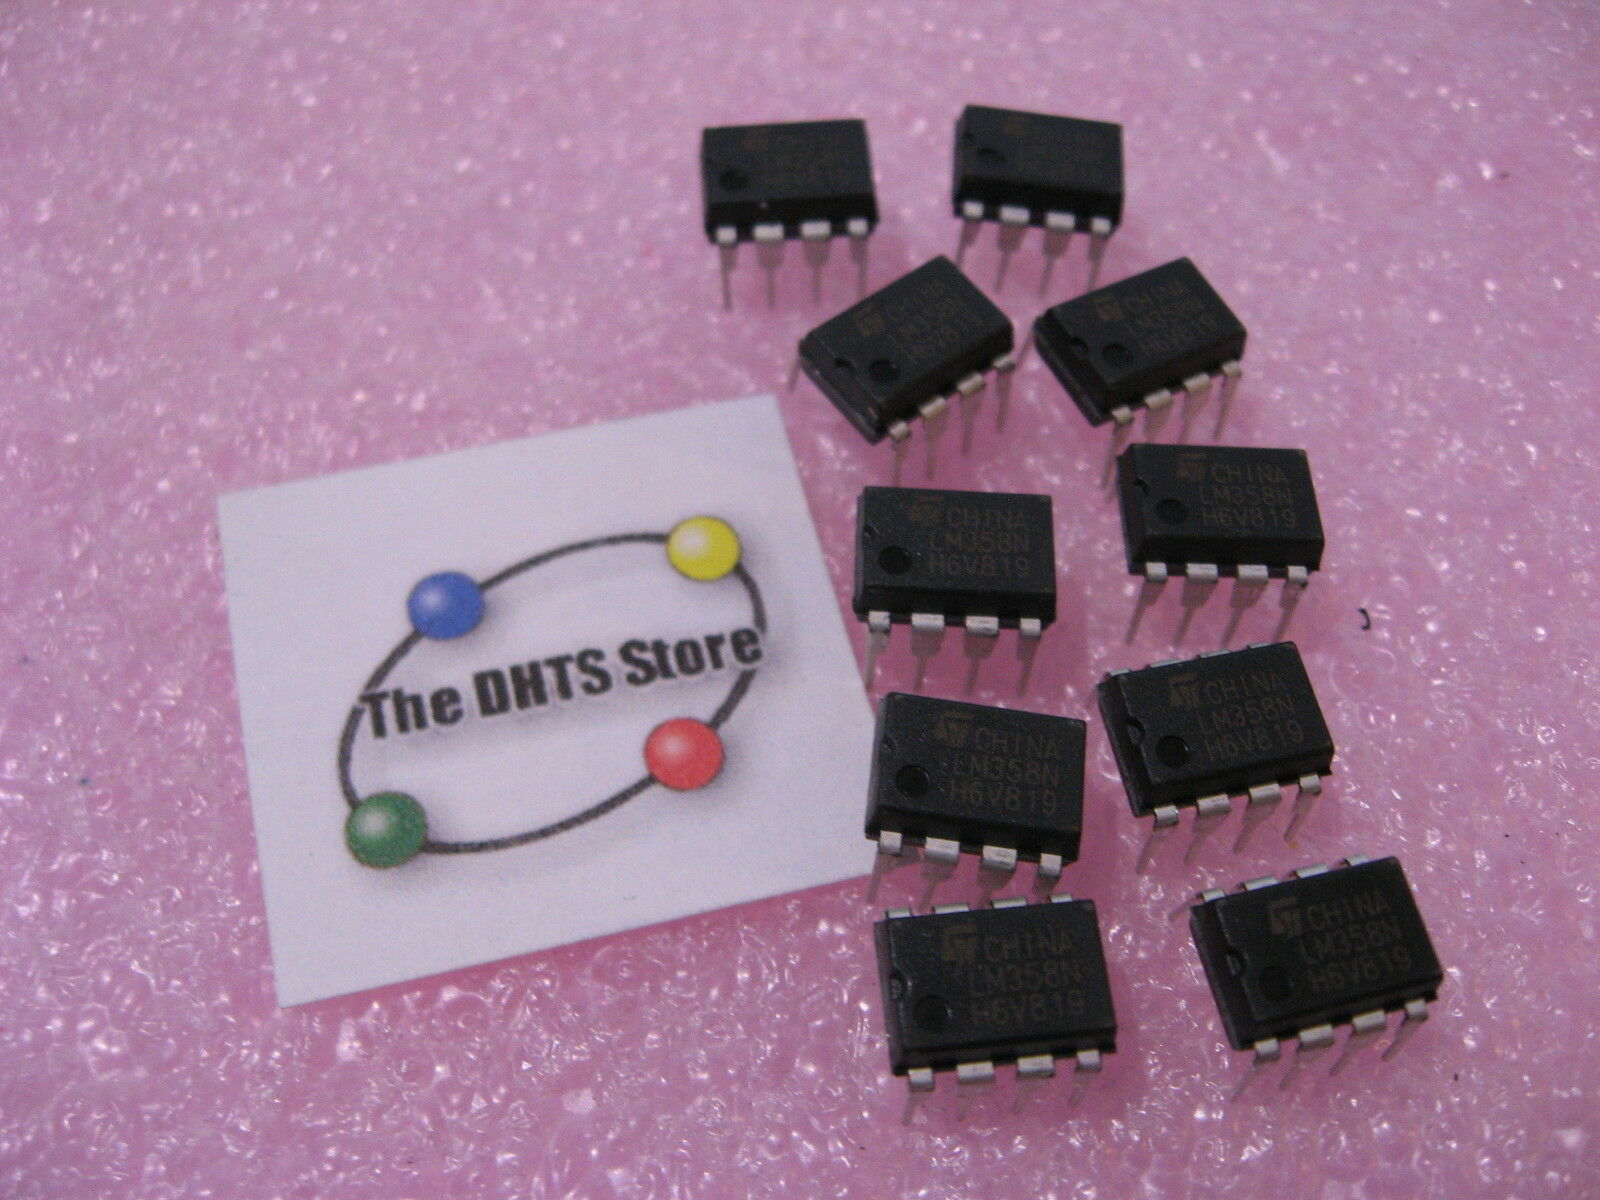 Lm358n Dual Opamp Operational Amplifier Ic Dip 8 Pin St Micro Lm358 Noninverting Page 2 Ebay